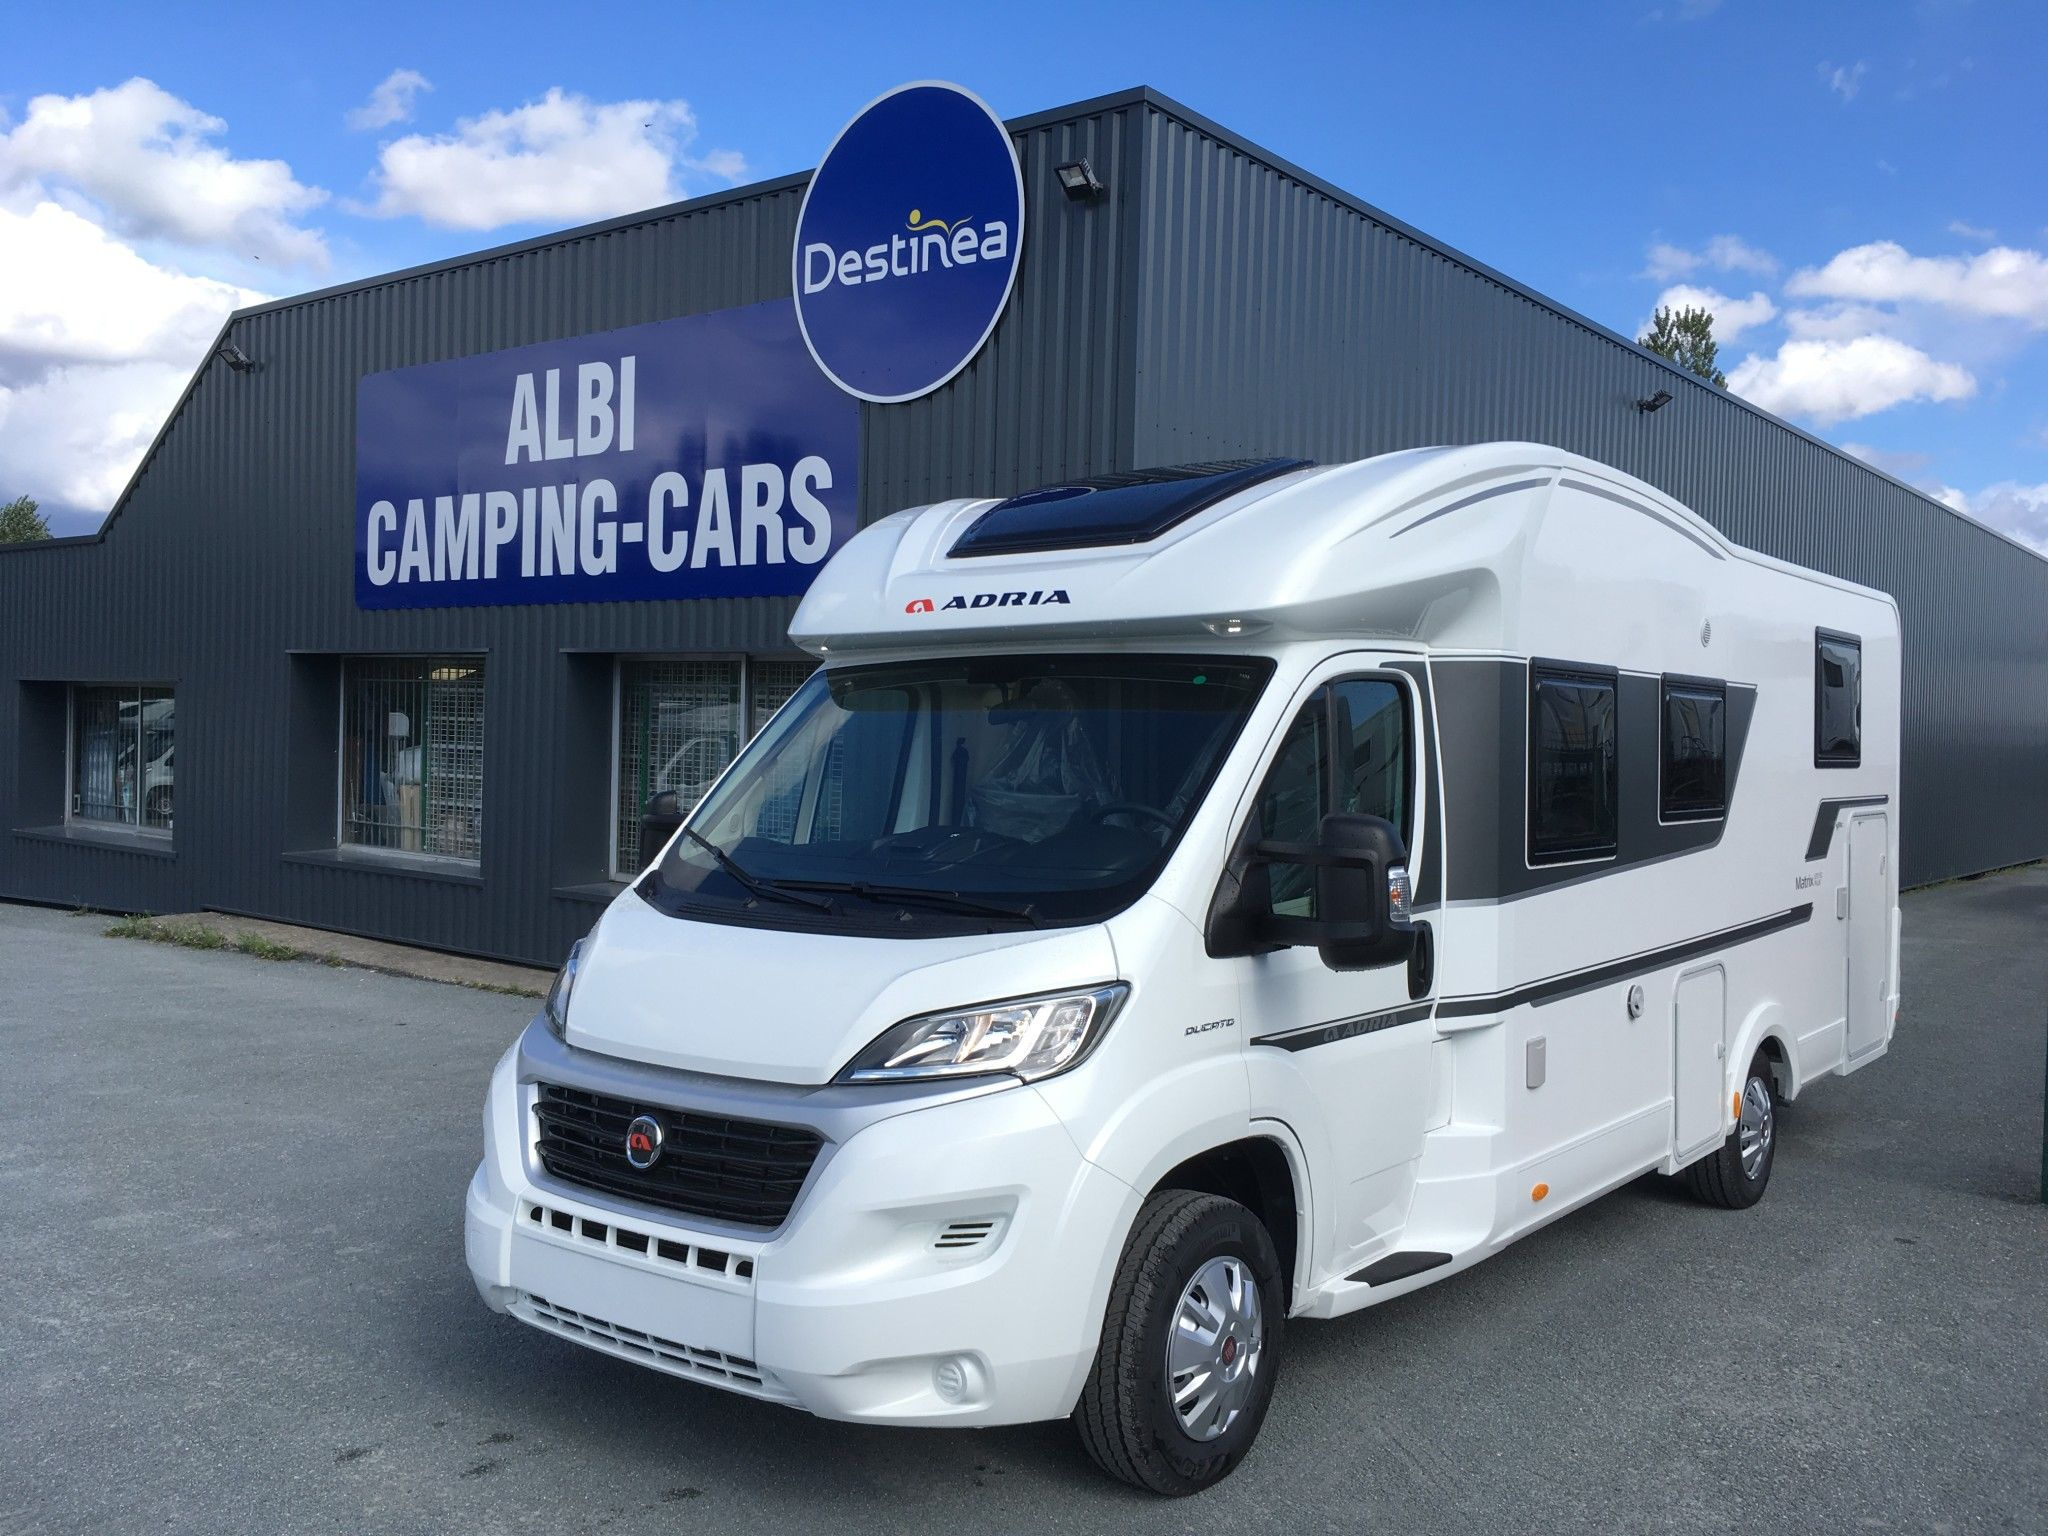 Camping-car ADRIA MATRIX PLUS 670 SC